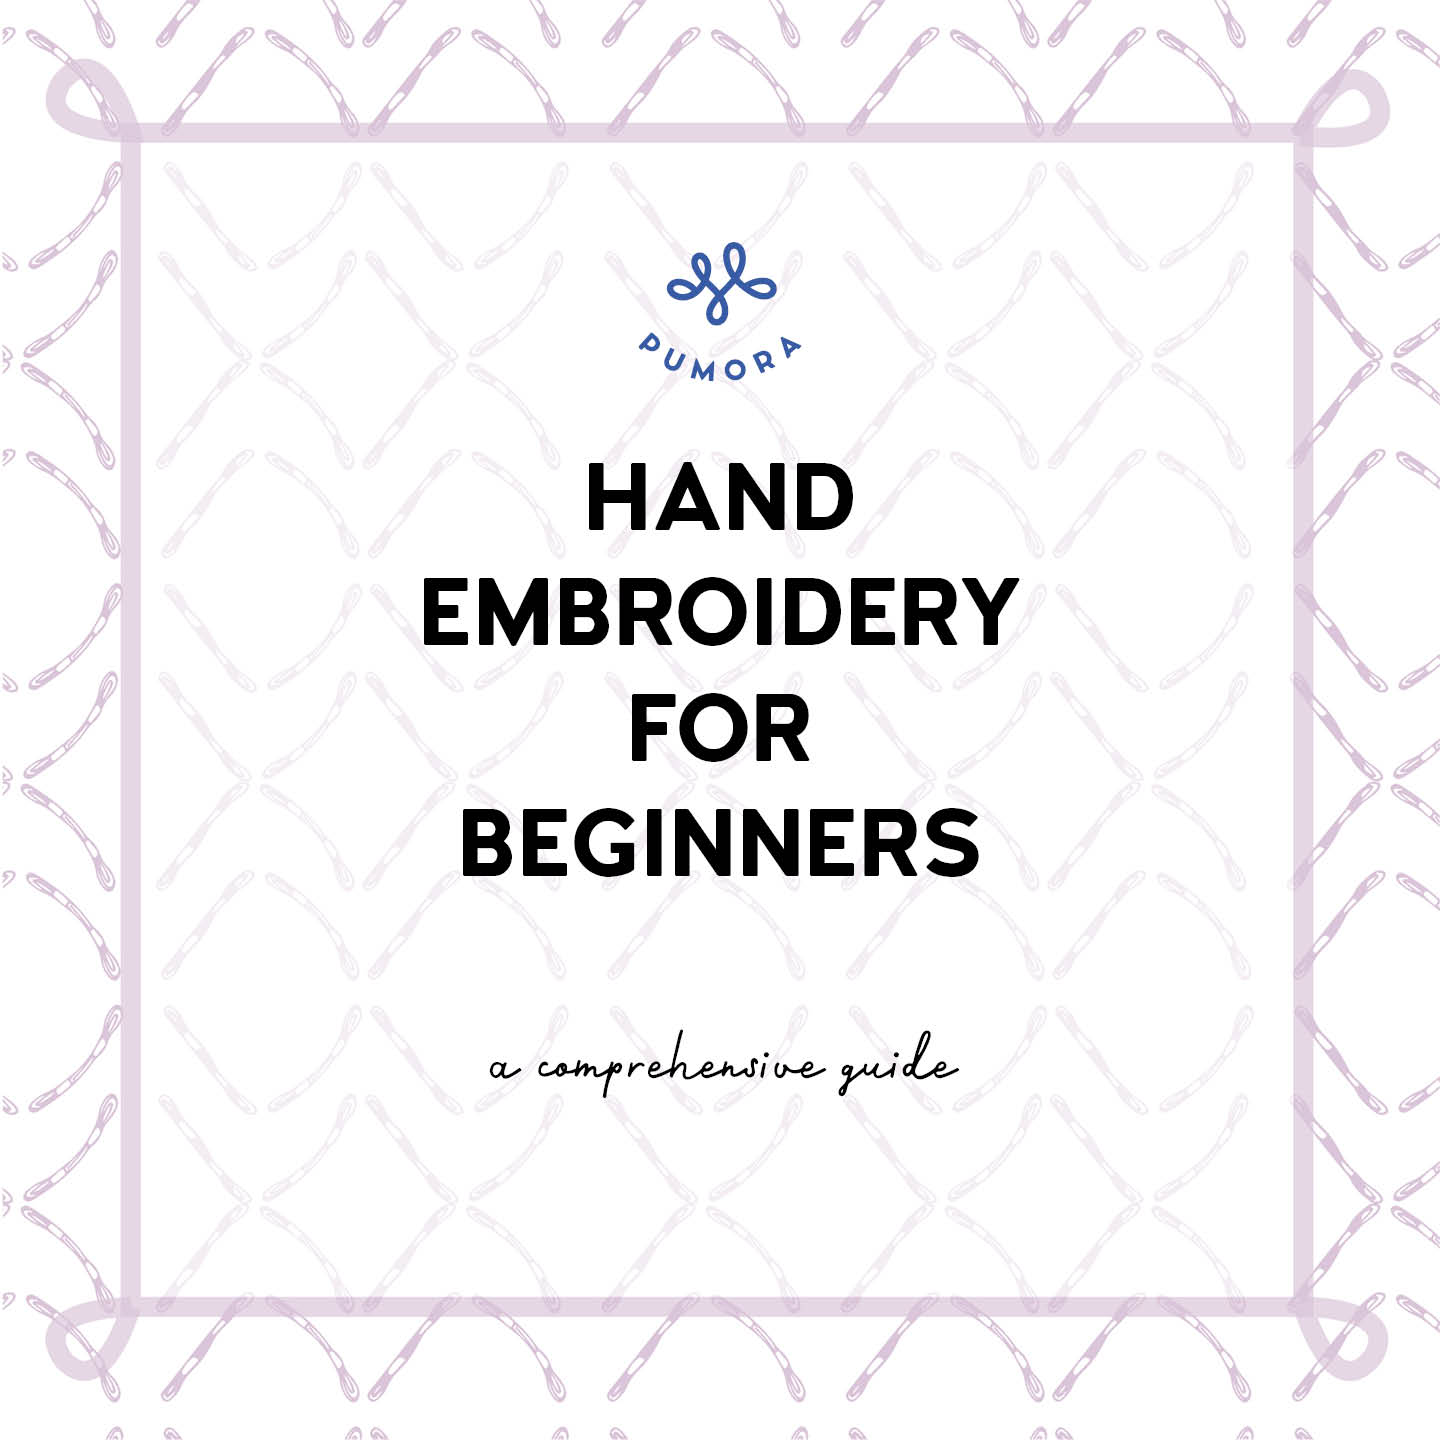 Embroidery for Beginners - how to embroider by hand